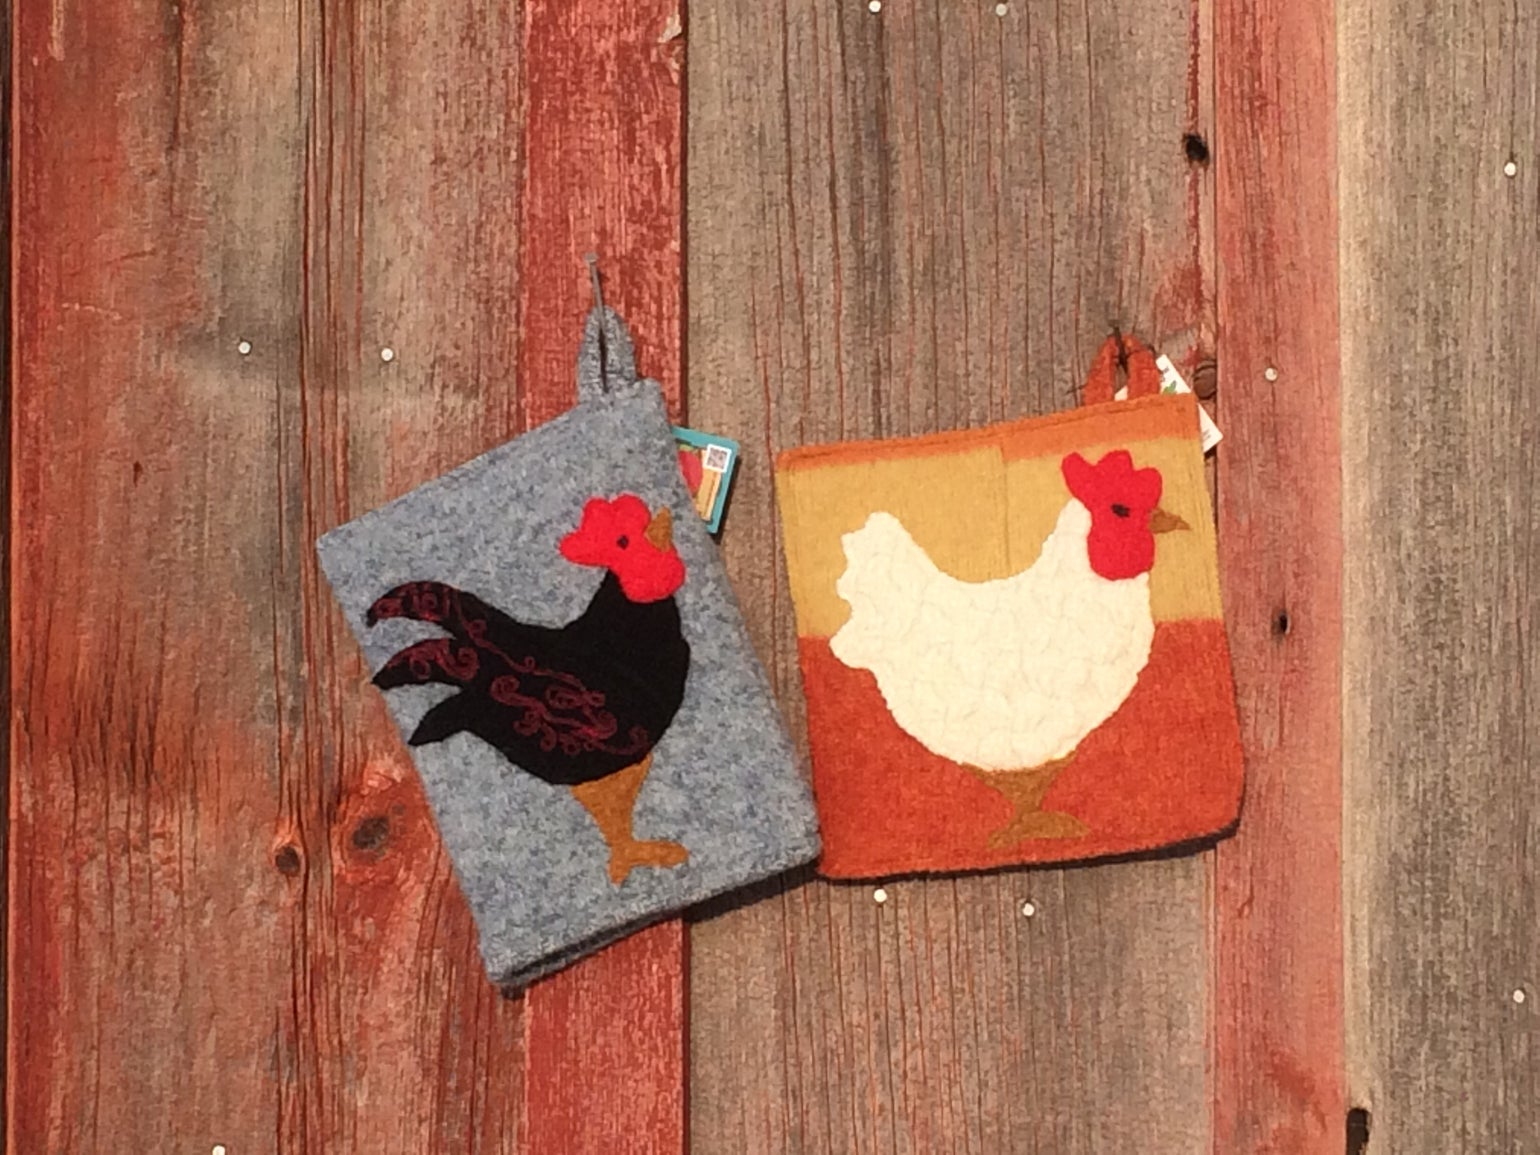 Image of Chickens! Chickens everywhere!